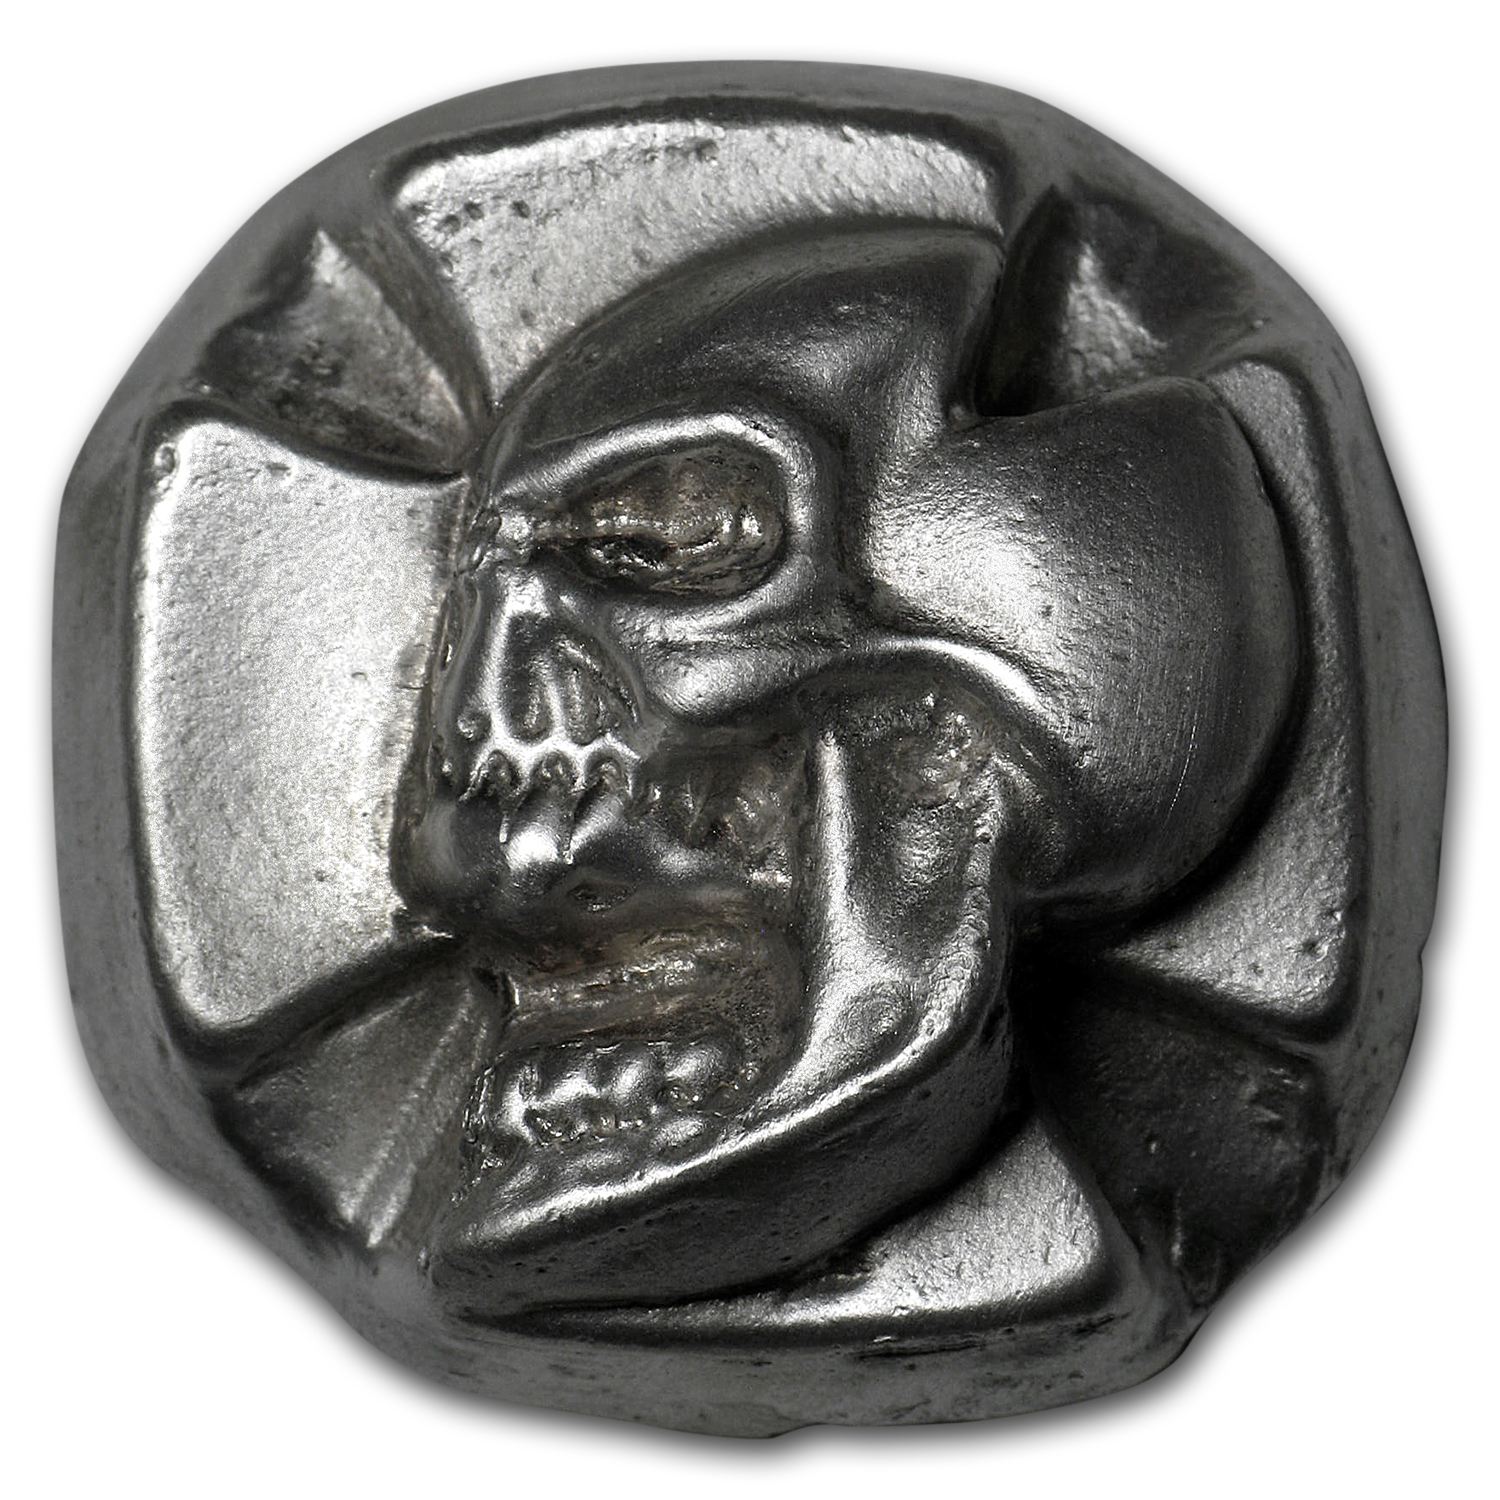 3 oz Silver Iron Cross Skull - Bison Bullion